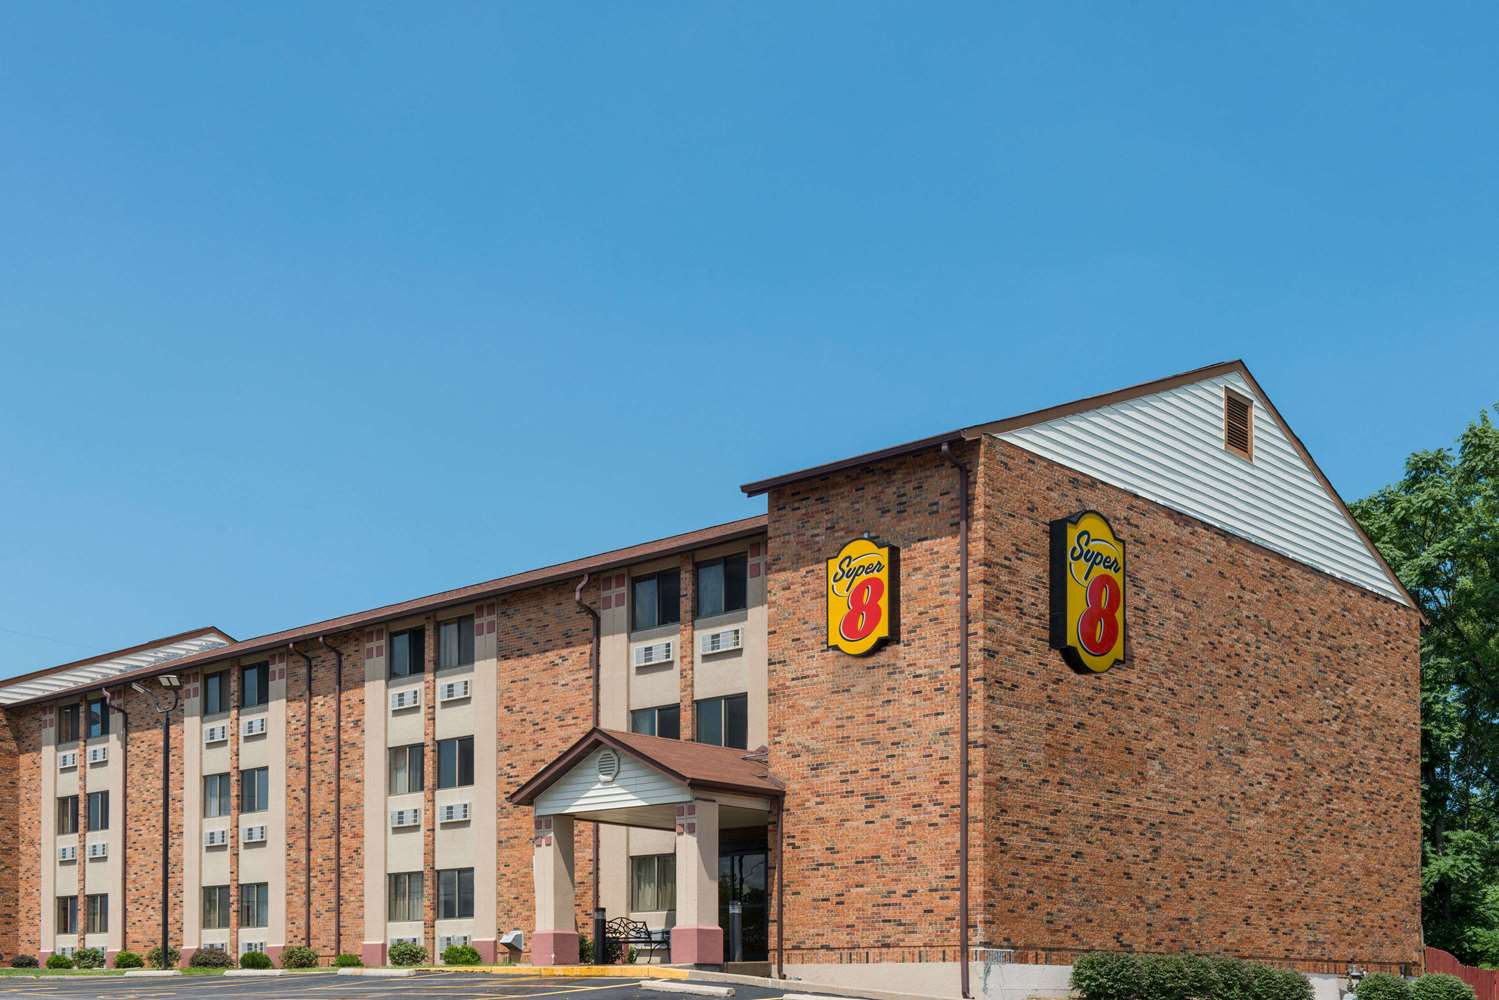 Super 8 Hotel St Charles Mo See Discounts